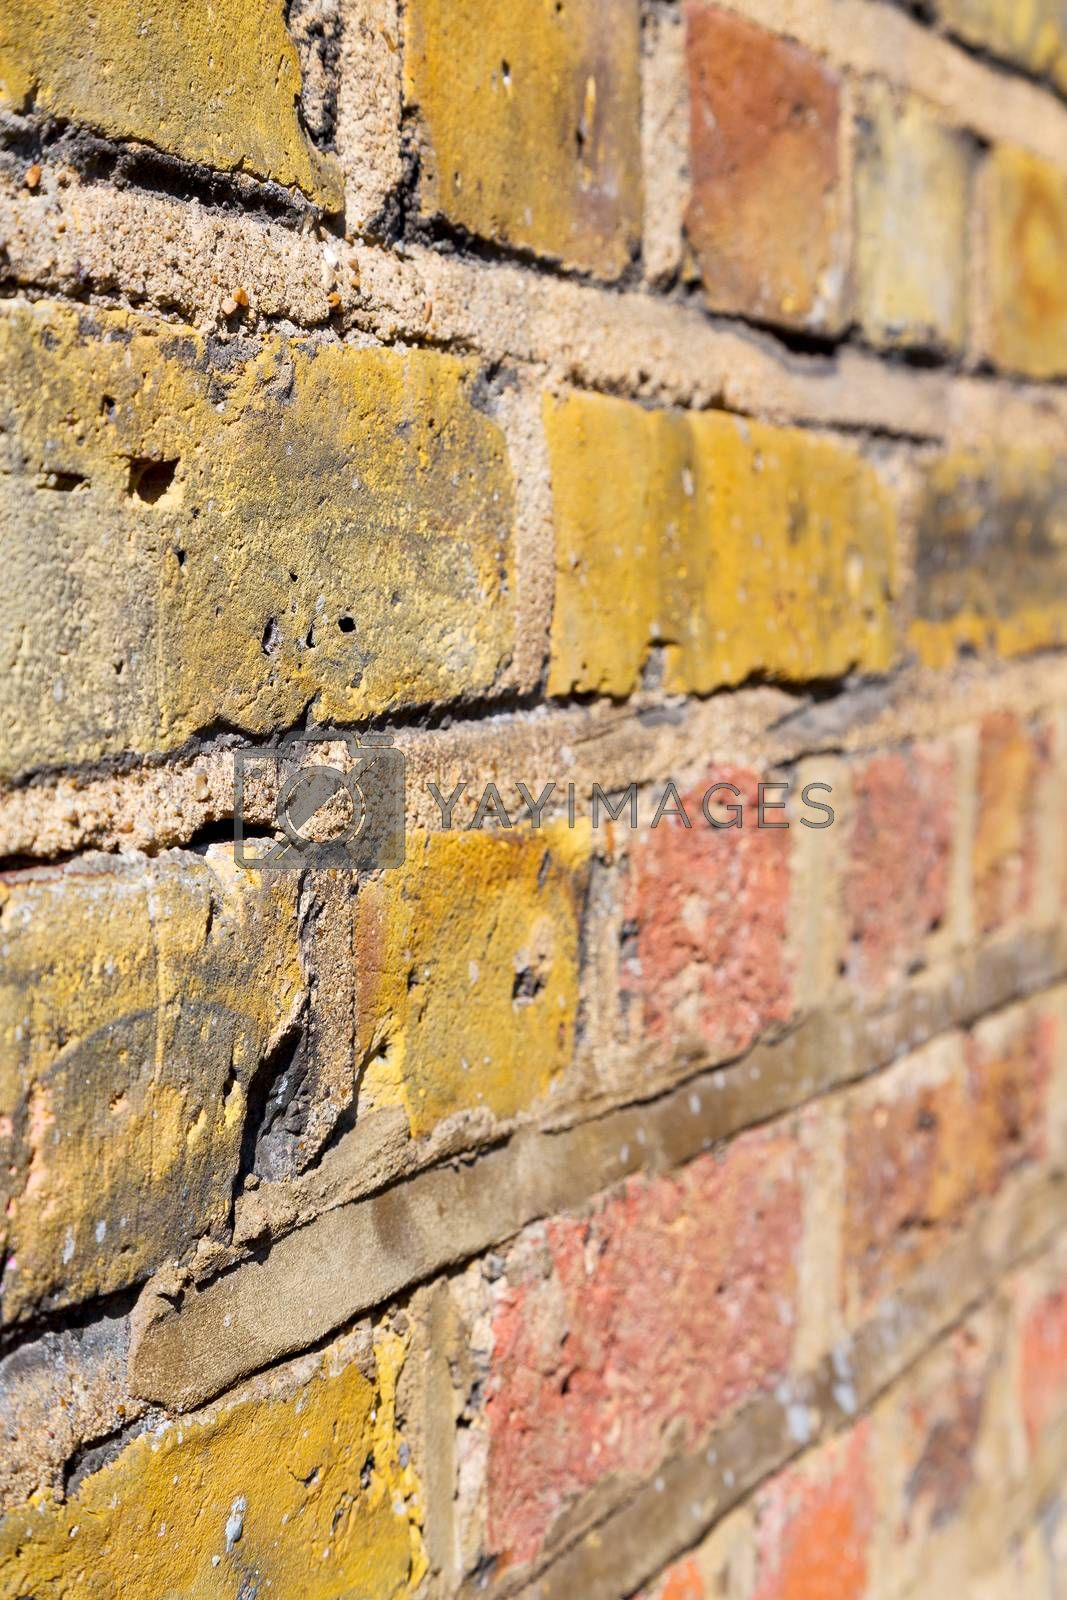 in london     texture  wall and ruined brick by lkpro